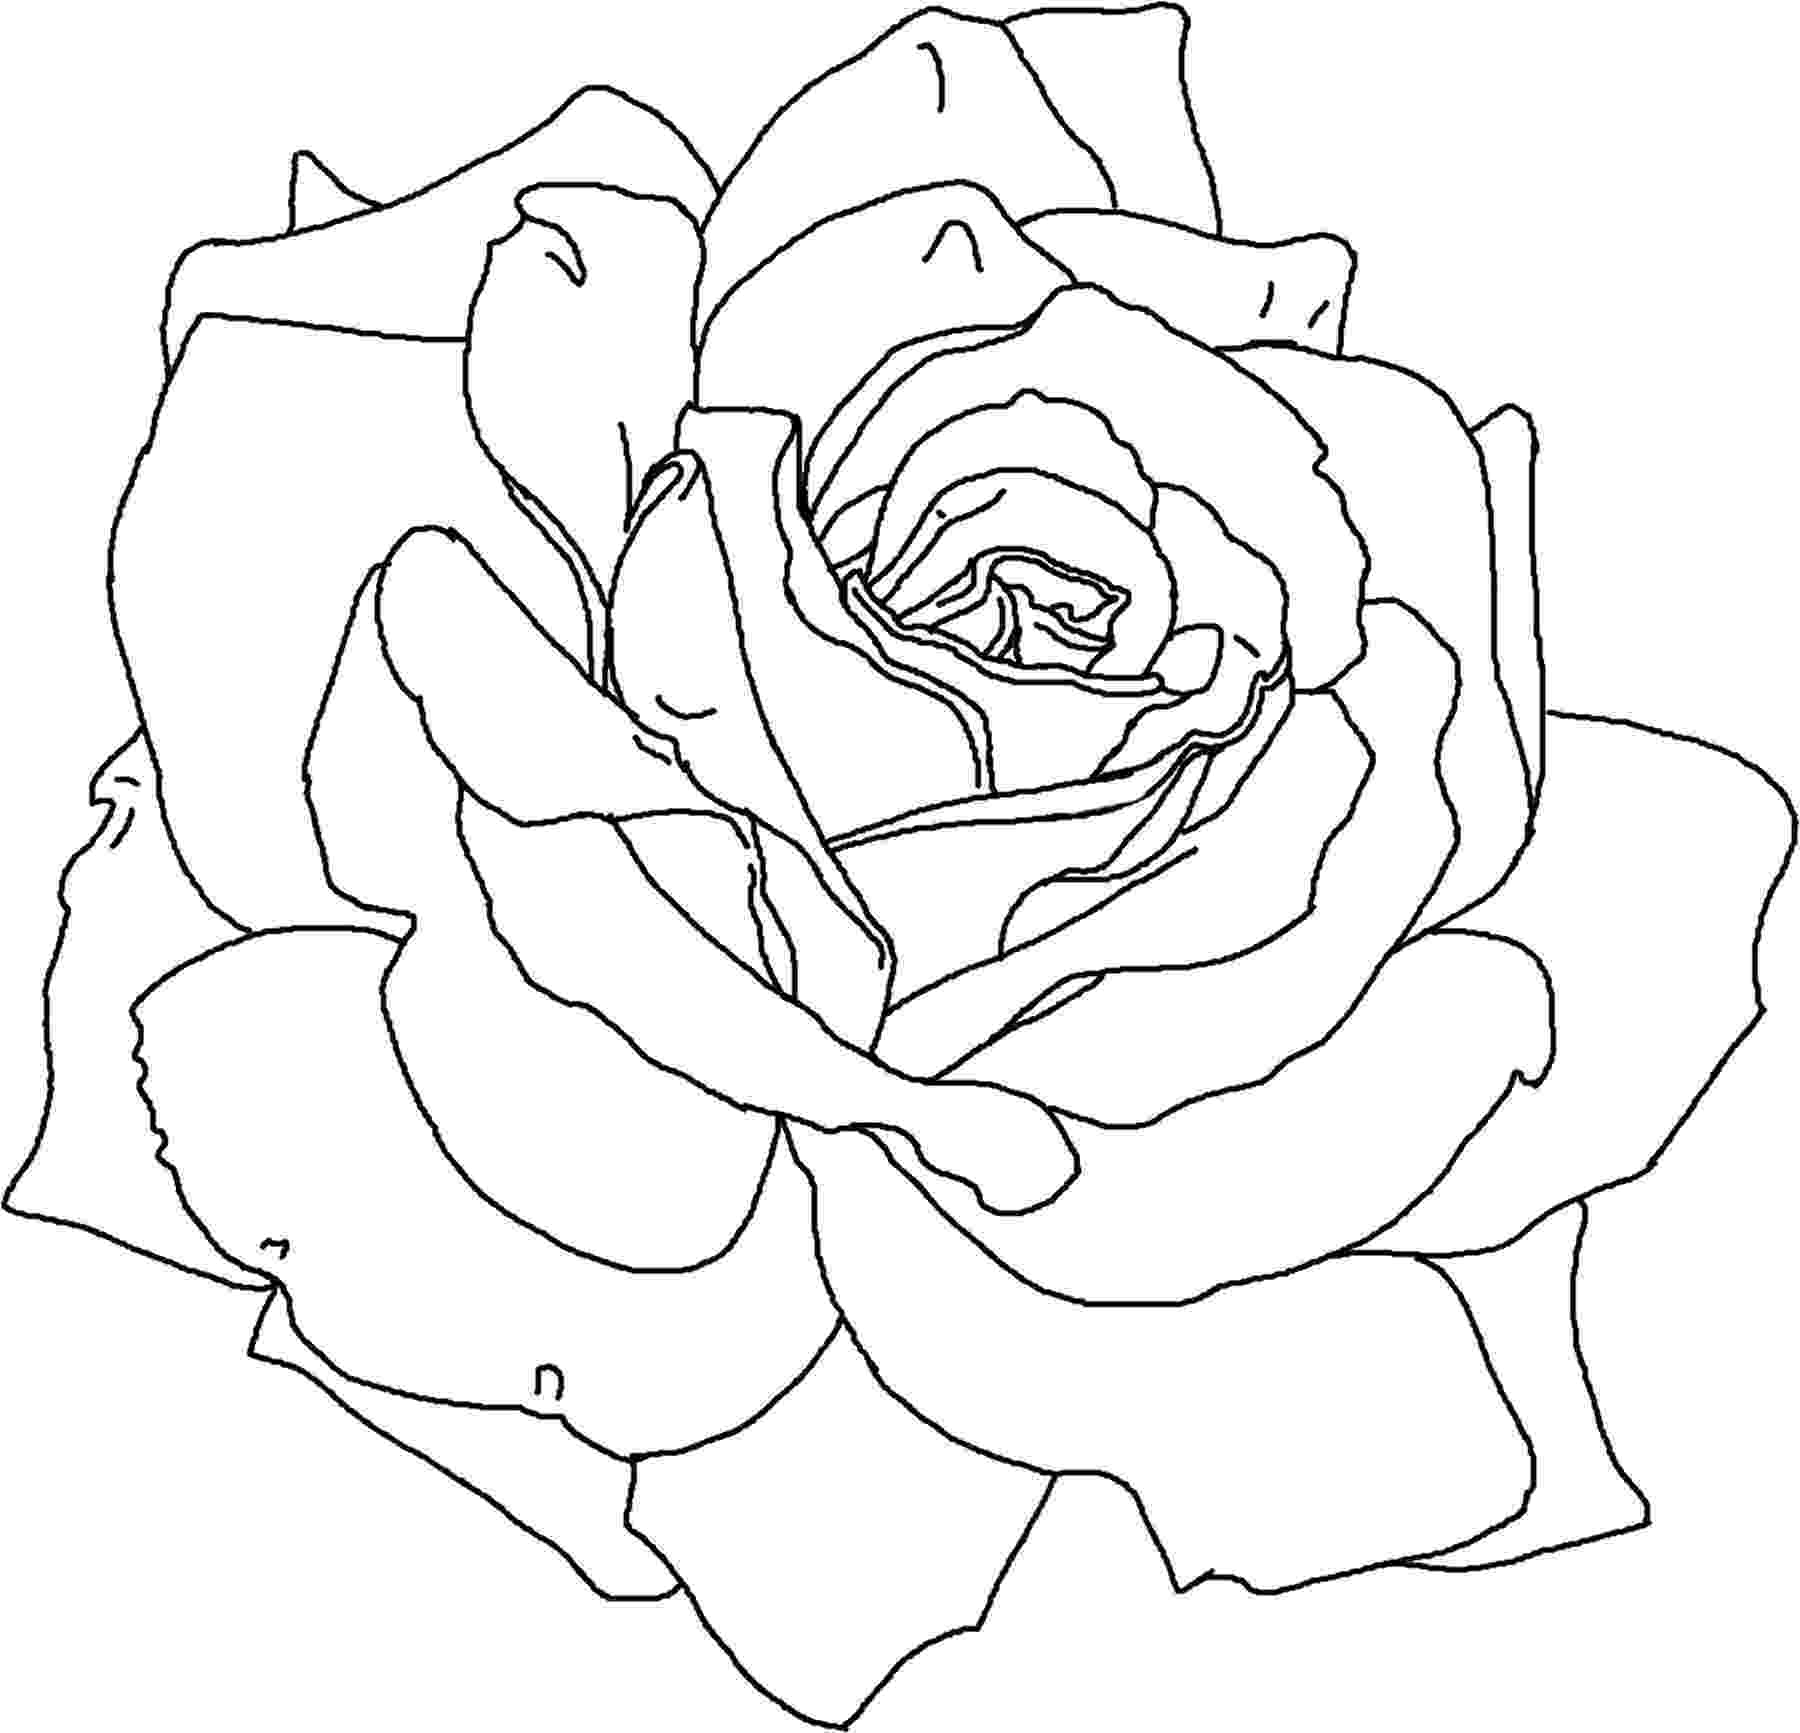 free coloring pictures of flowers free printable flower coloring pages for kids best coloring free pictures flowers of